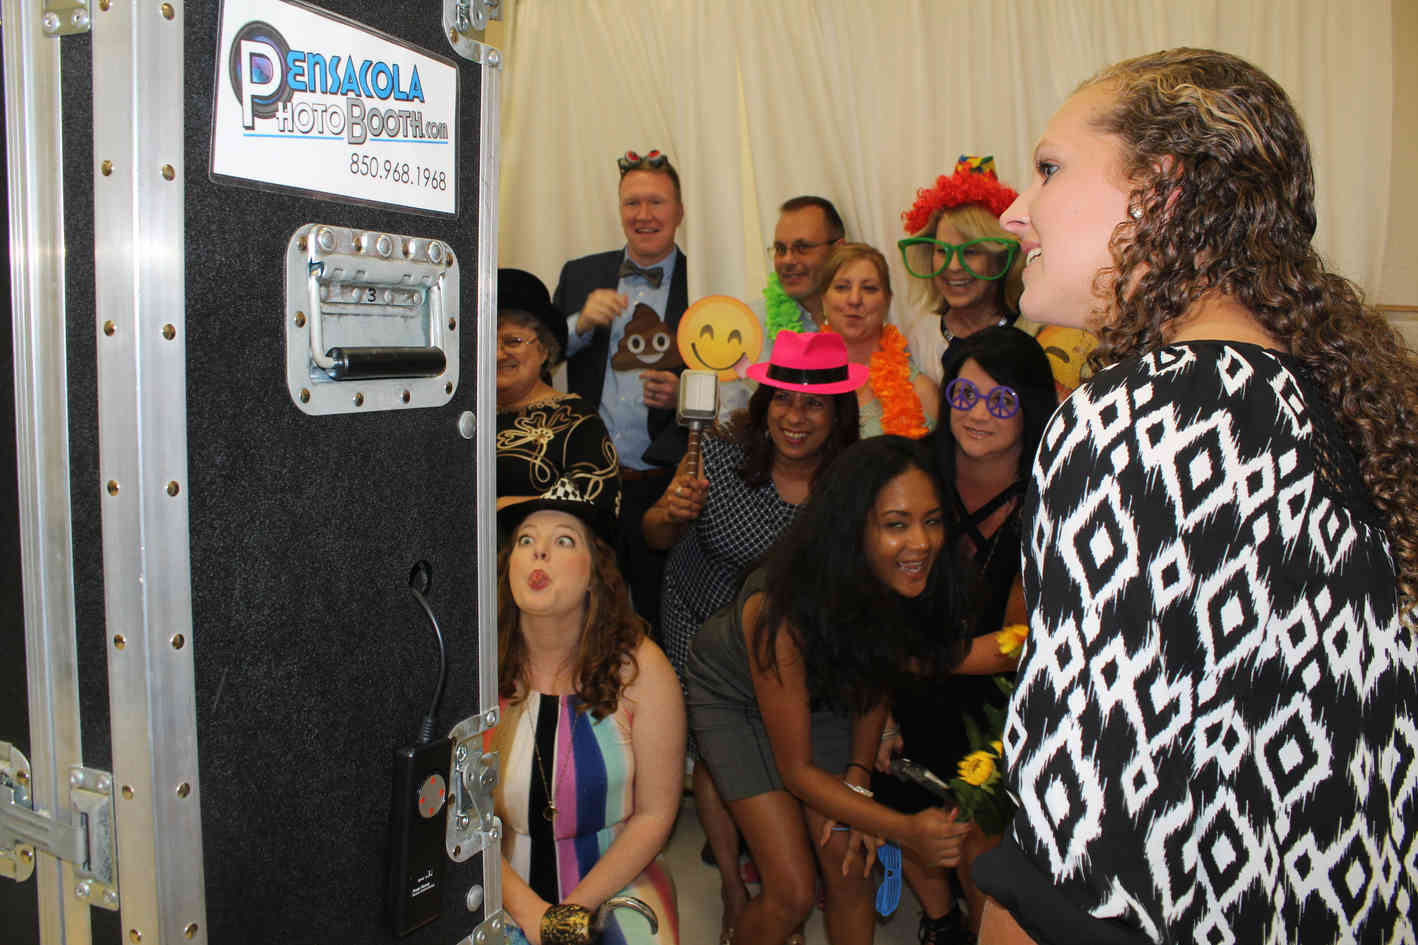 Emma with Pensacola Photo Booth